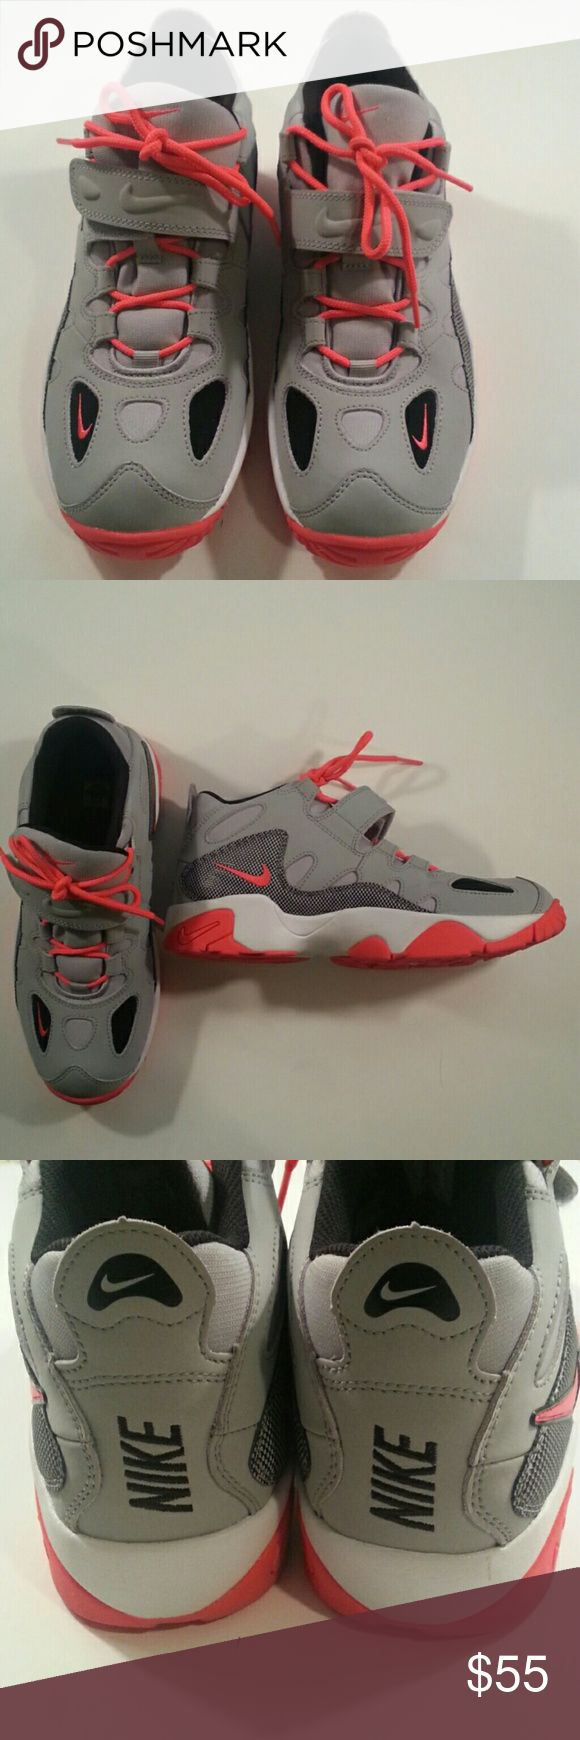 Nike Air Turf Raider Boys 7Y Grey, Neon Color Nike Air Turf Raiders Boys 7Y grey, black, white and neon color. Barely worn. Check out pictures. Don't miss these! Nike Shoes Sneakers